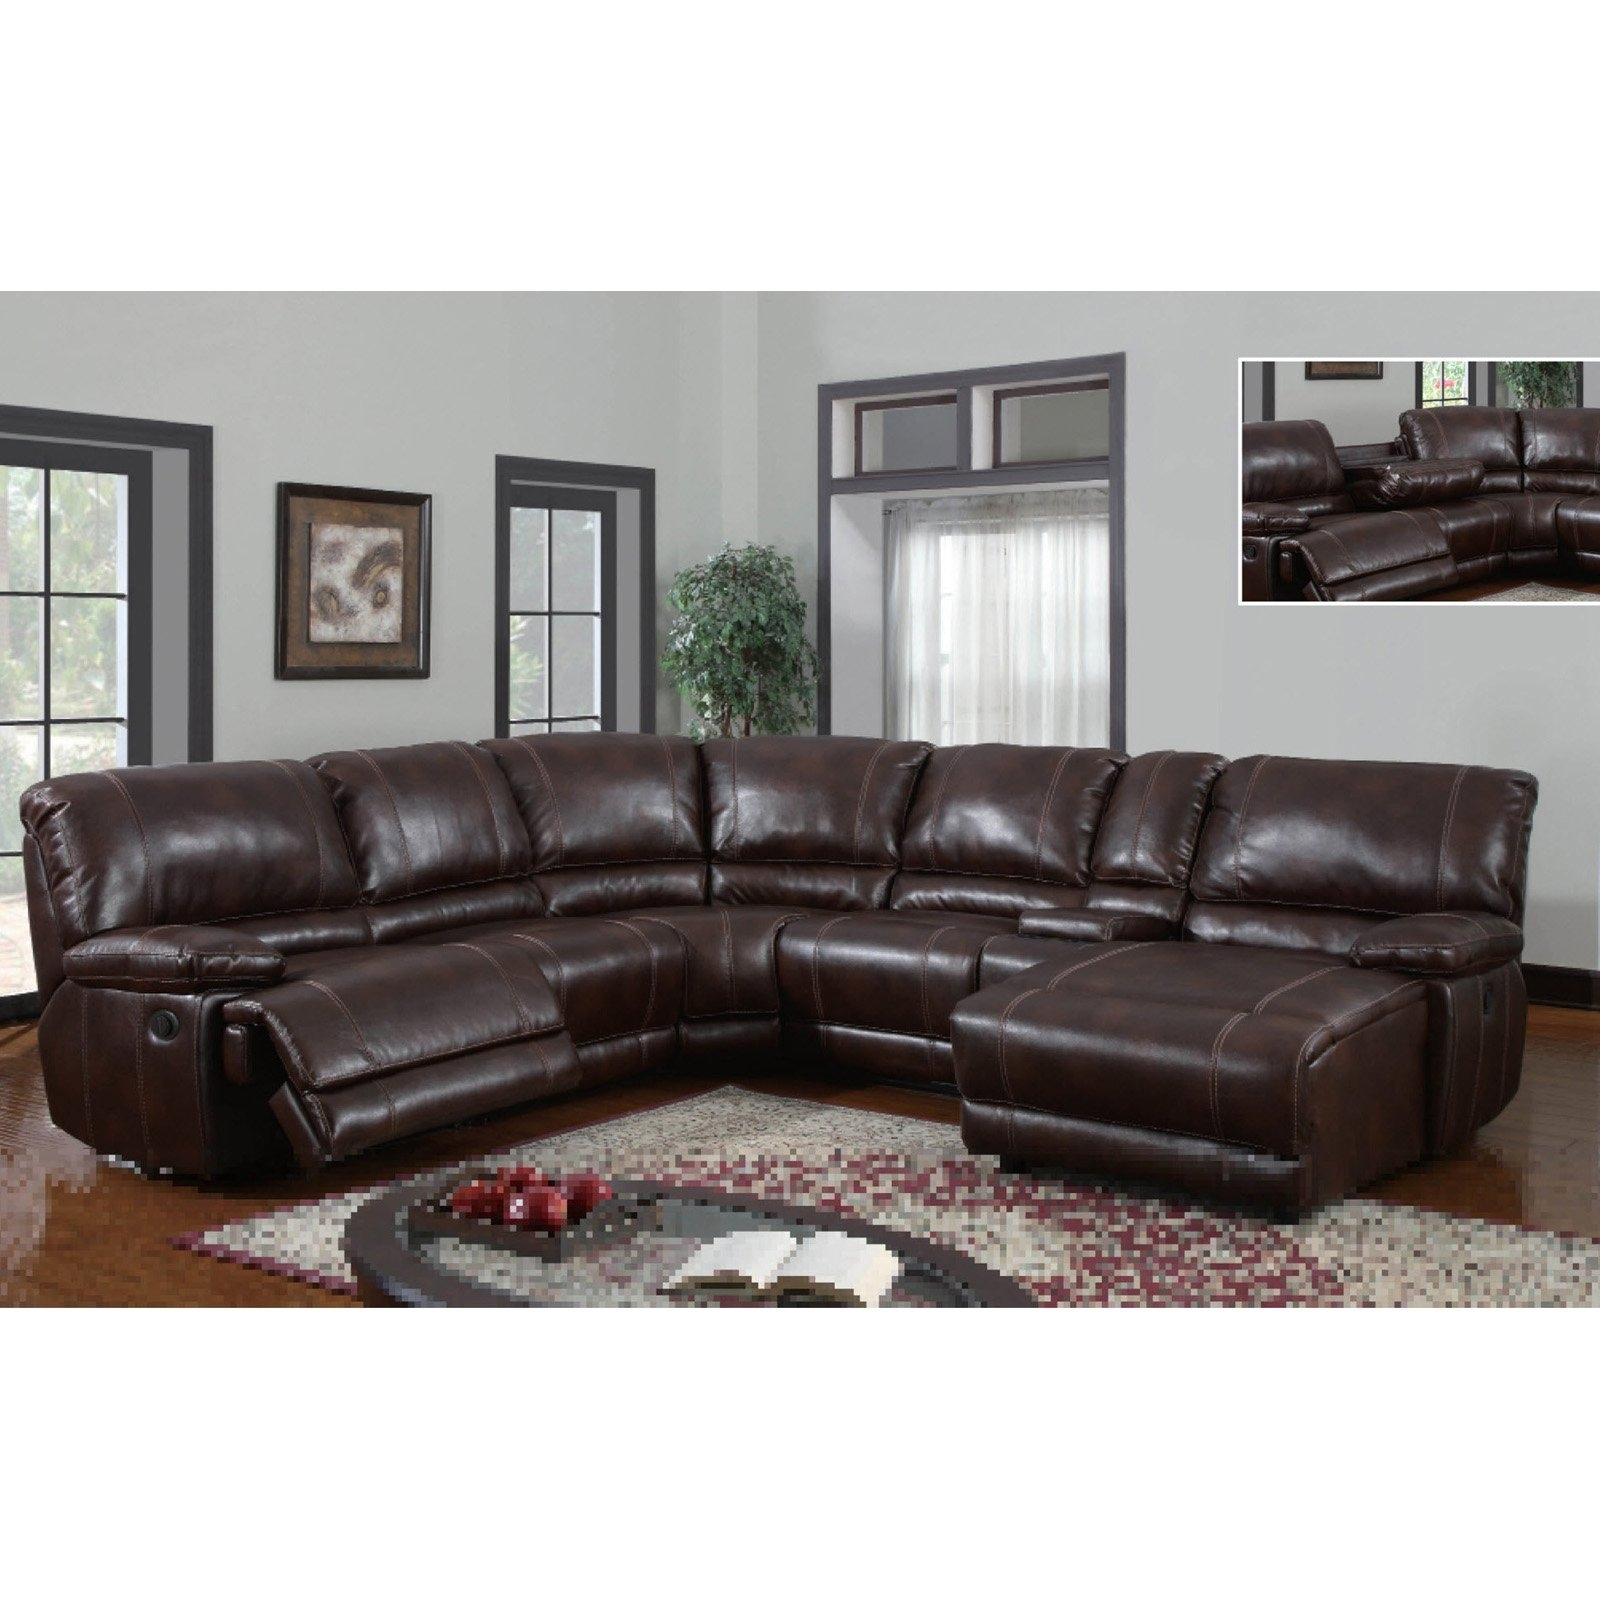 Leather Sectional Sofa With Power Recliner 11 With Leather Sectional intended for Sectional Sofas With Power Recliners (Image 2 of 10)